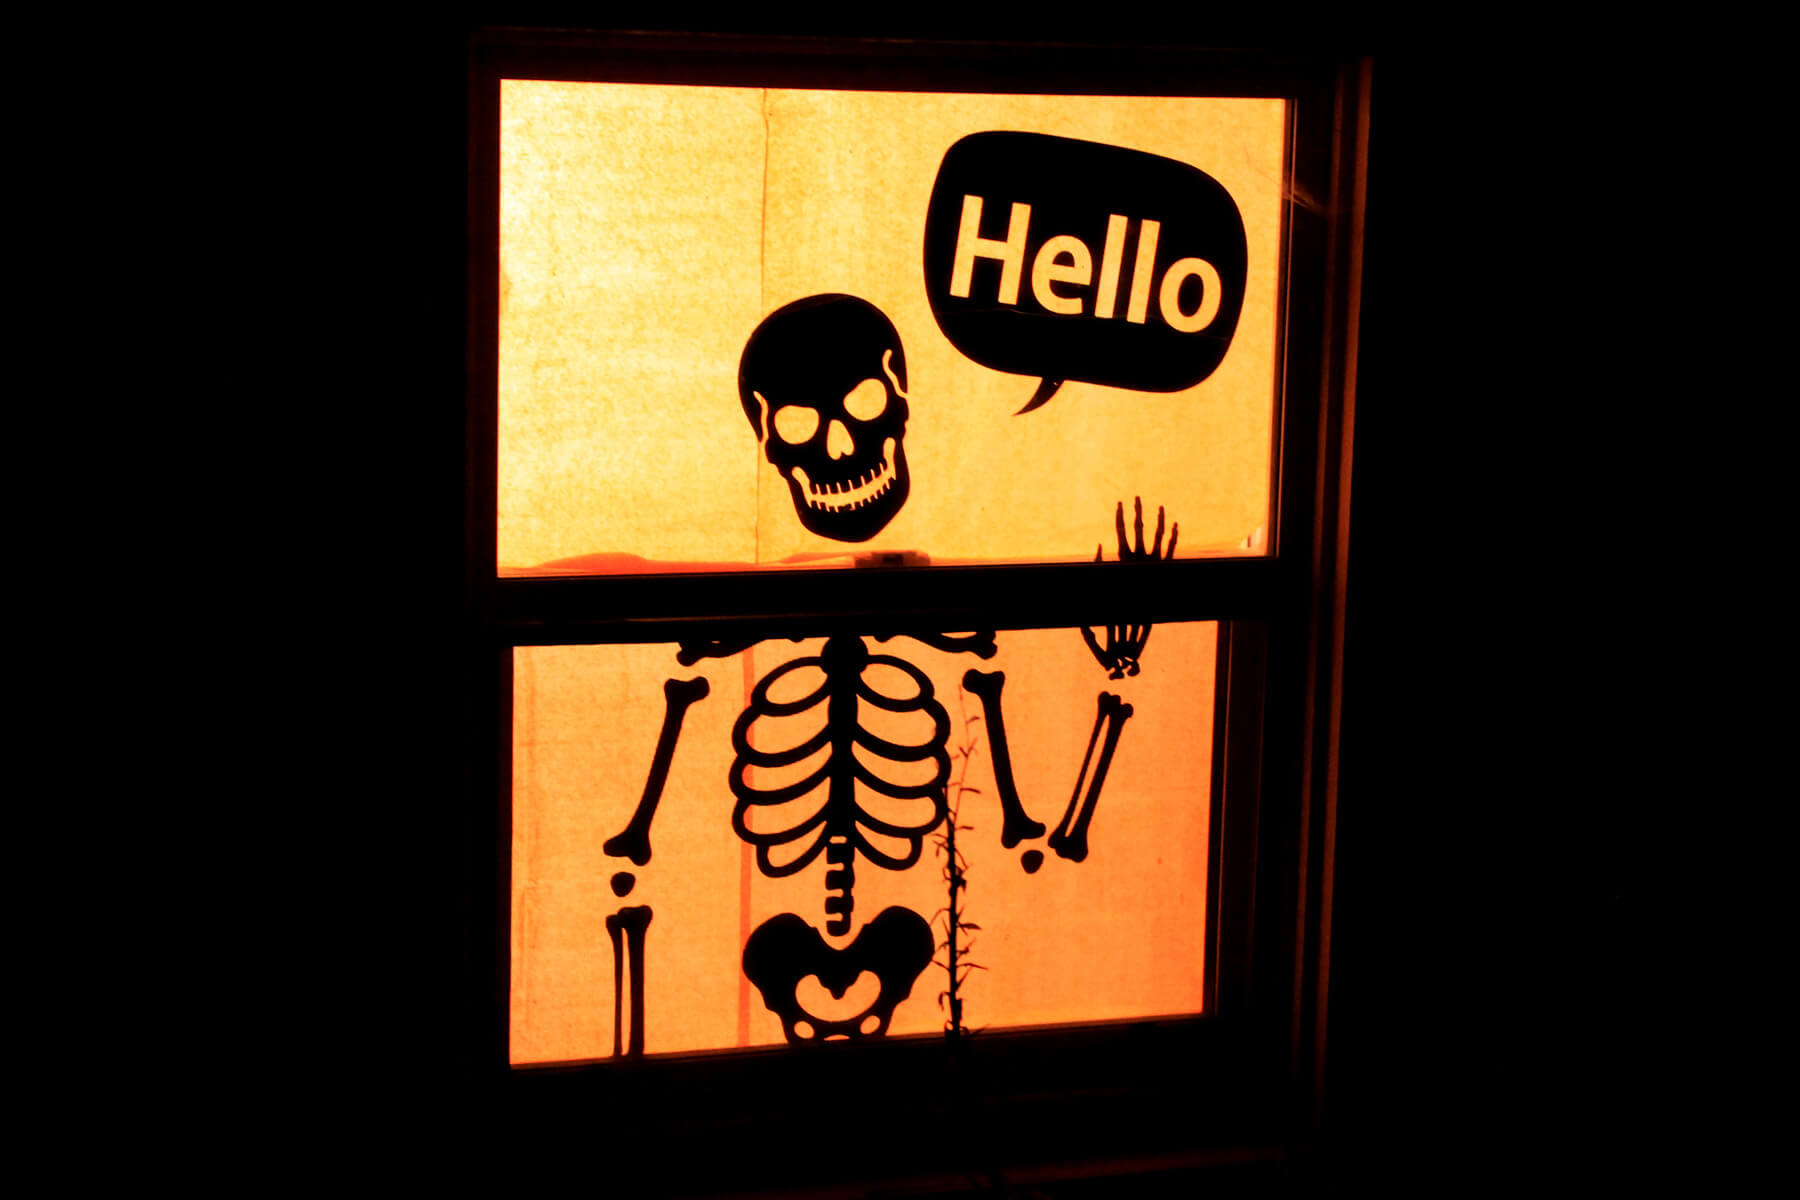 Skeleton says hello silhouette window decoration for Halloween